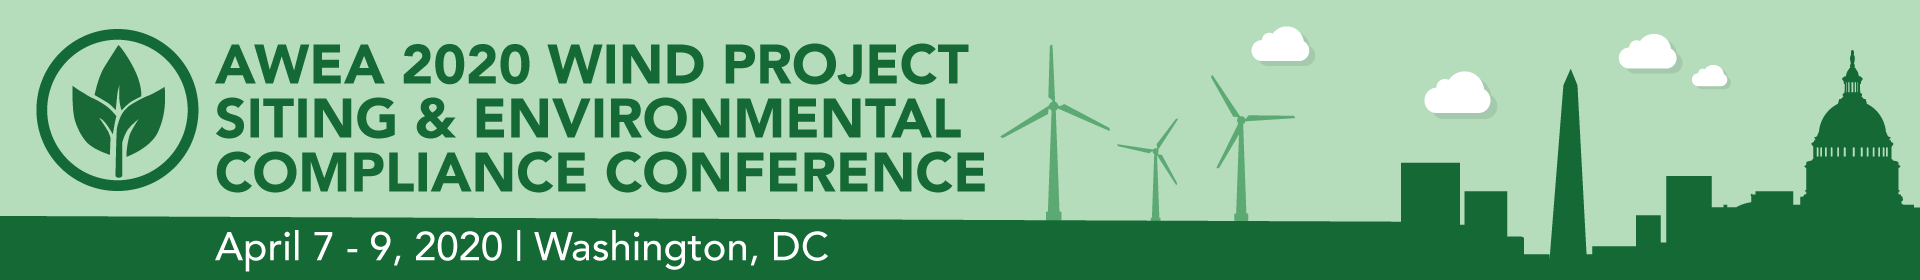 AWEA Wind Project Siting and Environmental Compliance Conference 2020 Event Banner